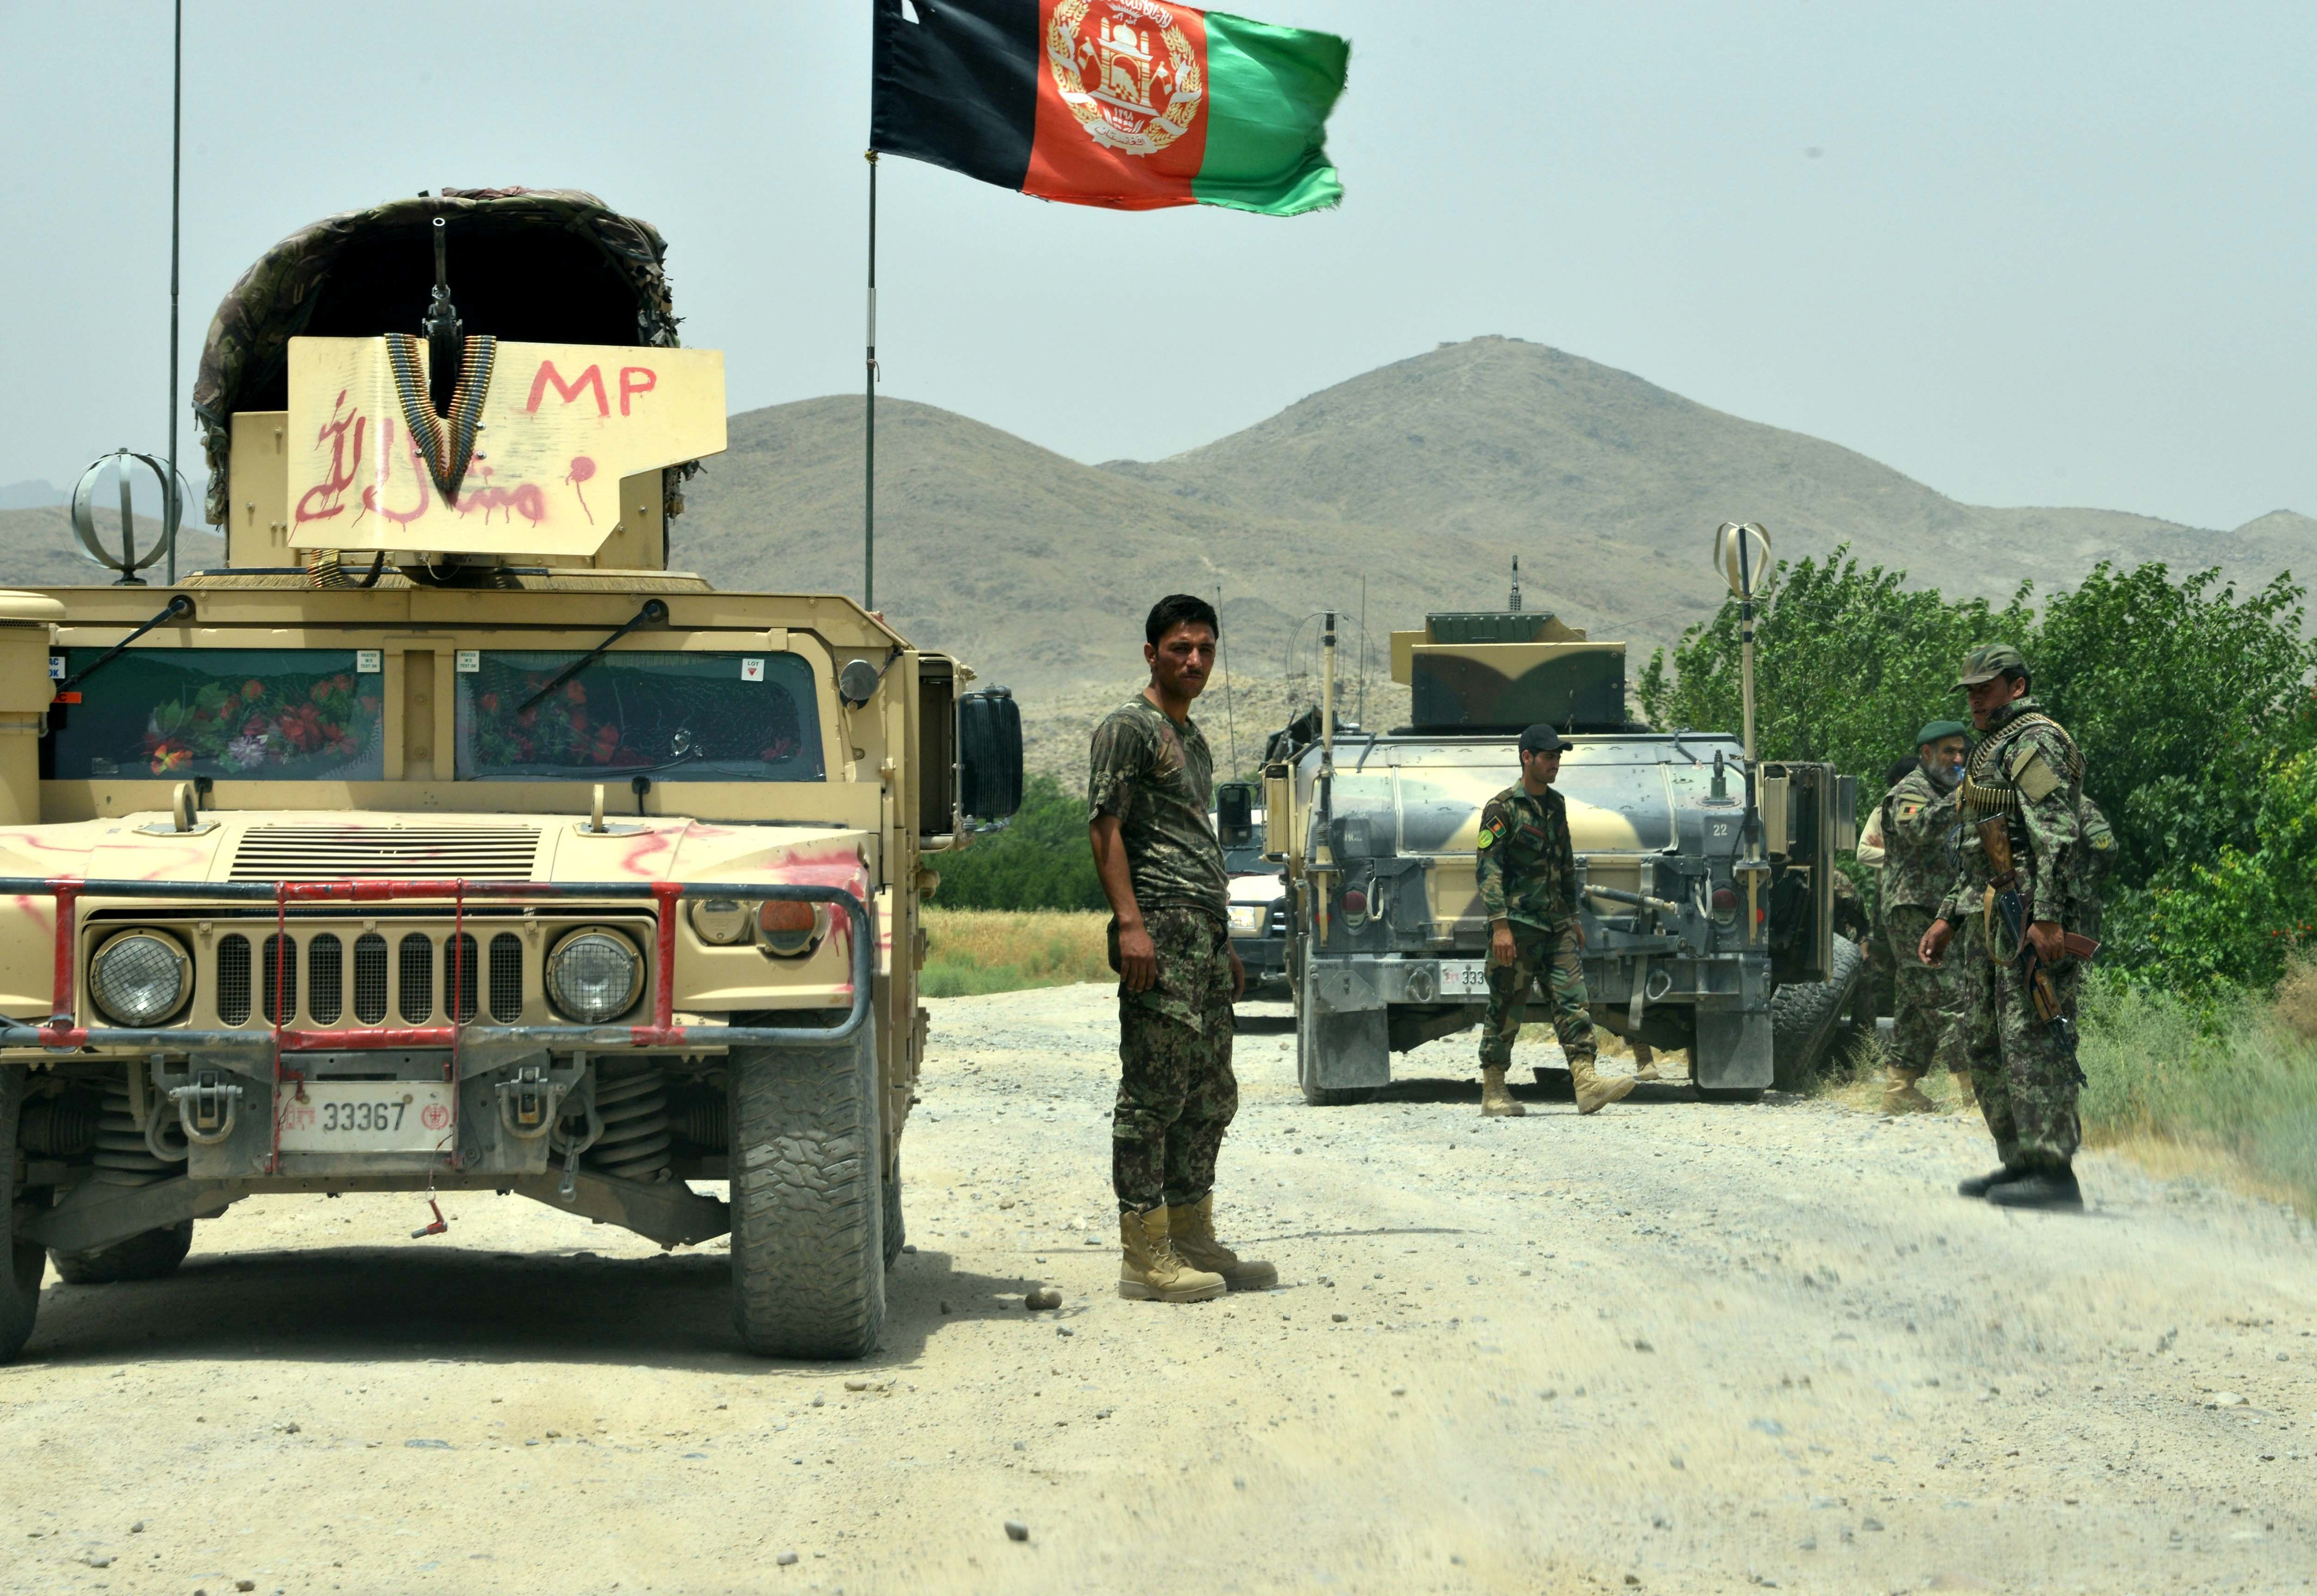 Afghan National Army (ANA) soldiers patrol the Shah Wali Kot district of Kandahar province on May 23, 2017. At least 10 Afghan soldiers were killed when militants attacked their army base in the southern province of Kandahar, the defence ministry said May 23, in the latest attack on Western-backed forces. / AFP PHOTO / JAVED TANVEER        (Photo credit should read JAVED TANVEER/AFP/Getty Images)